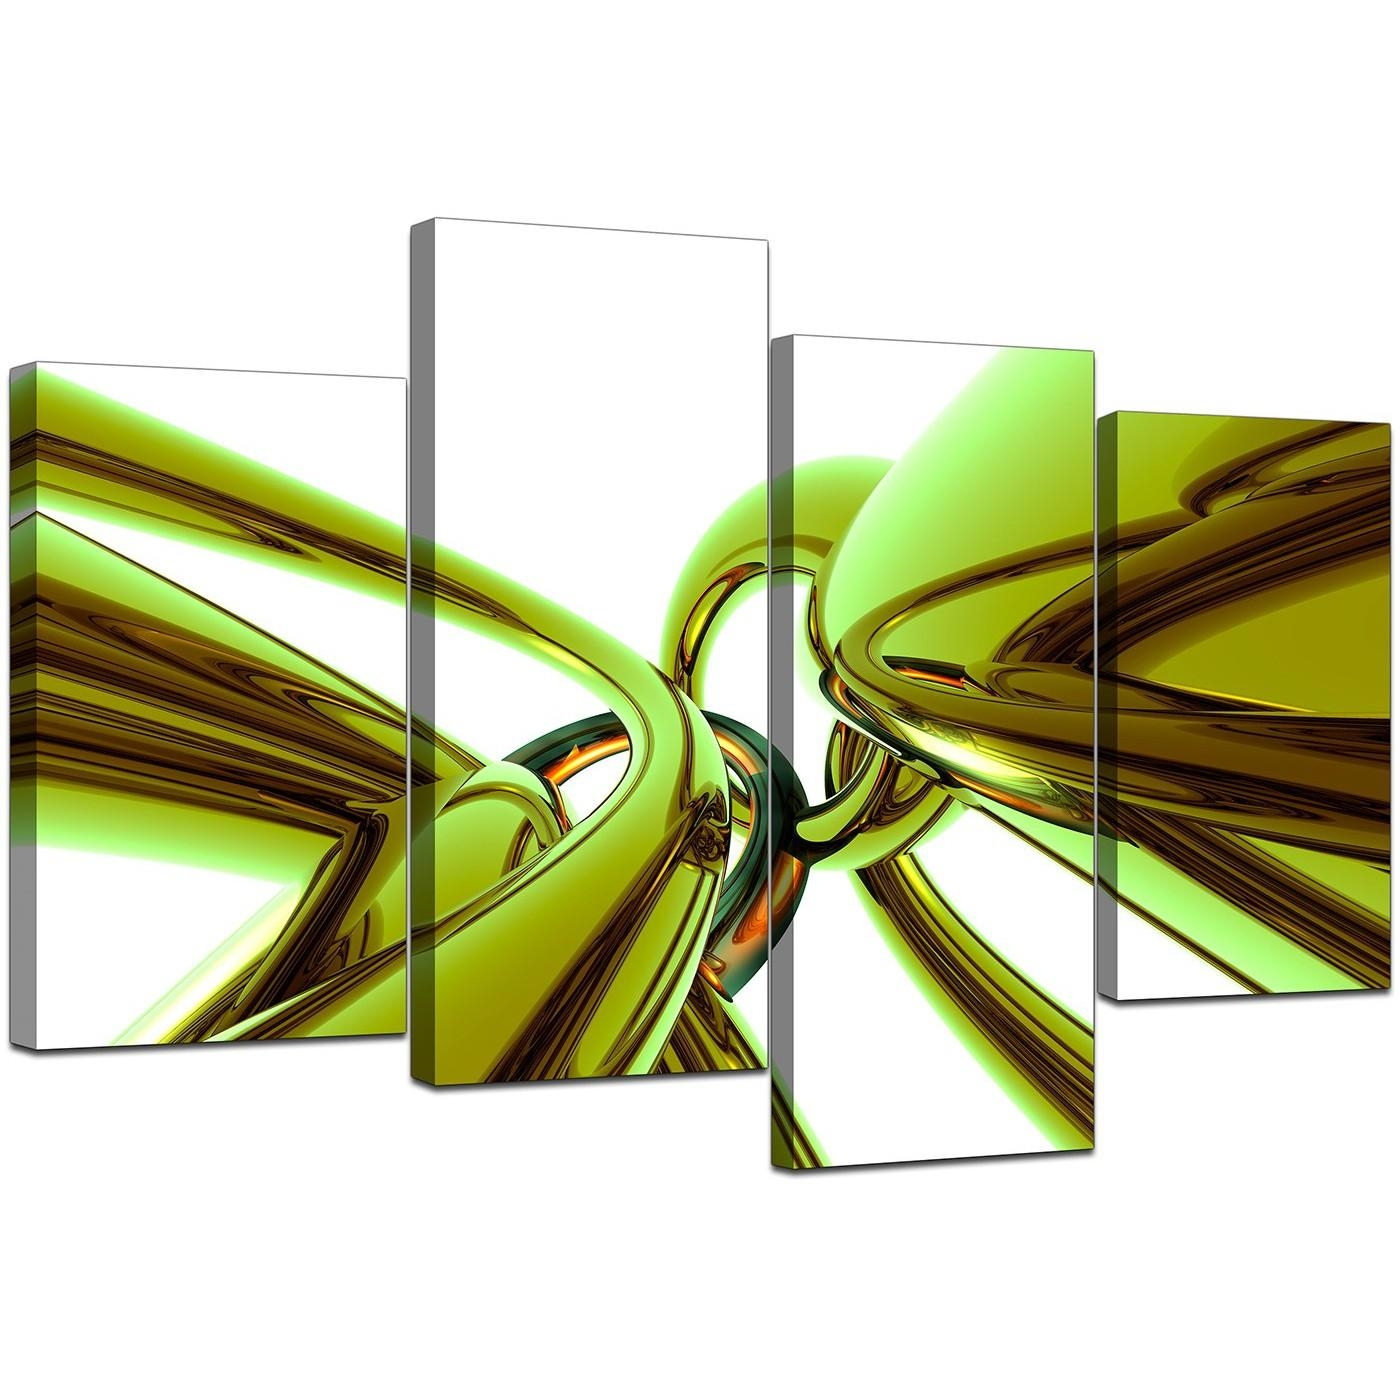 Abstract Canvas Wall Art In Green For Your Living Room – Set Of 4 Throughout Lime Green Wall Art (View 3 of 20)